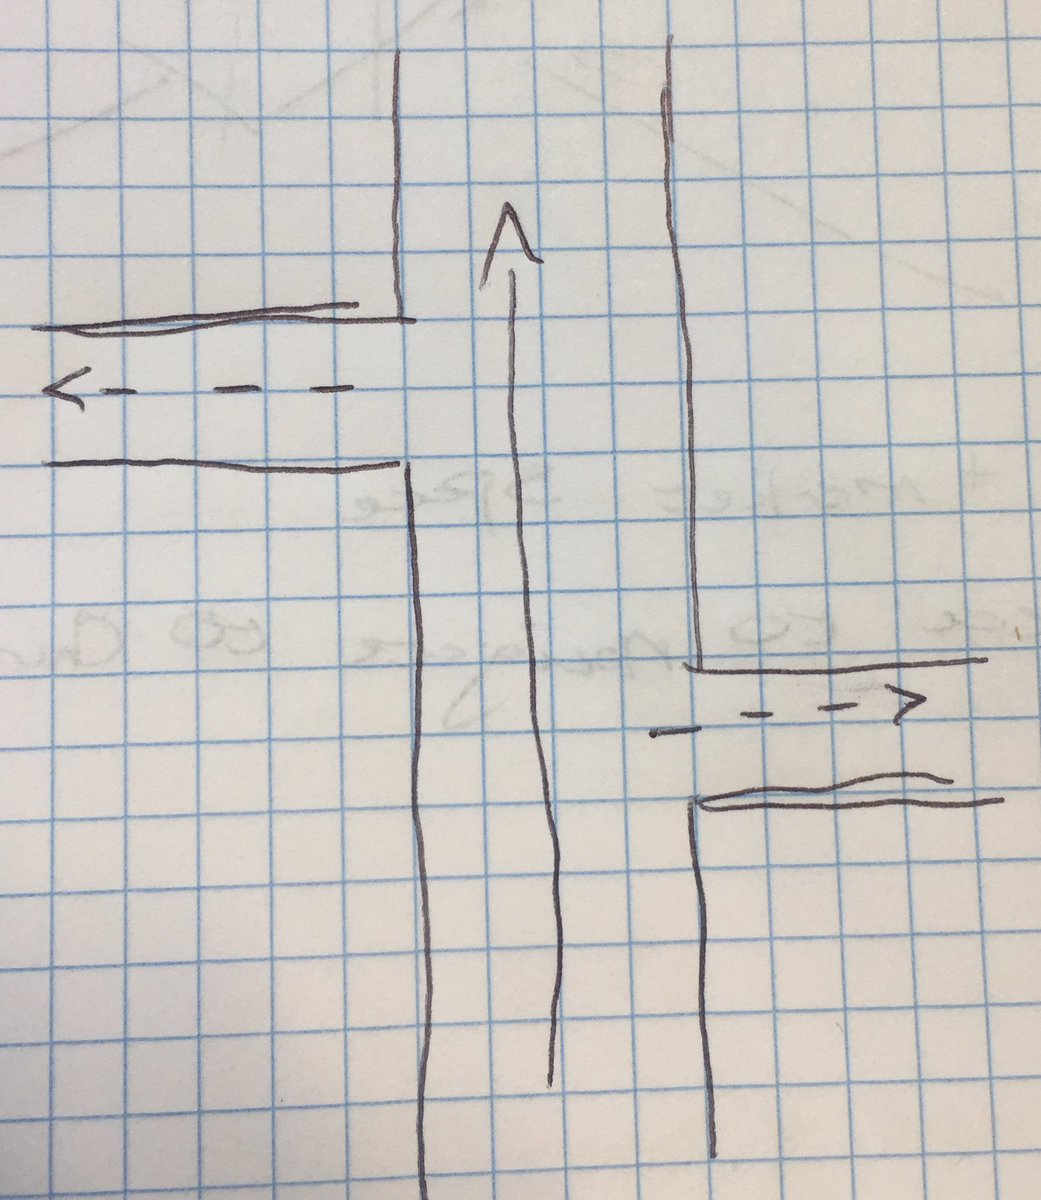 Max pears on twitter a leveldesign tips make sure paths width is max pears on twitter a leveldesign tips make sure paths width is considered for the main and secondary paths this signals to players which si the most ccuart Gallery